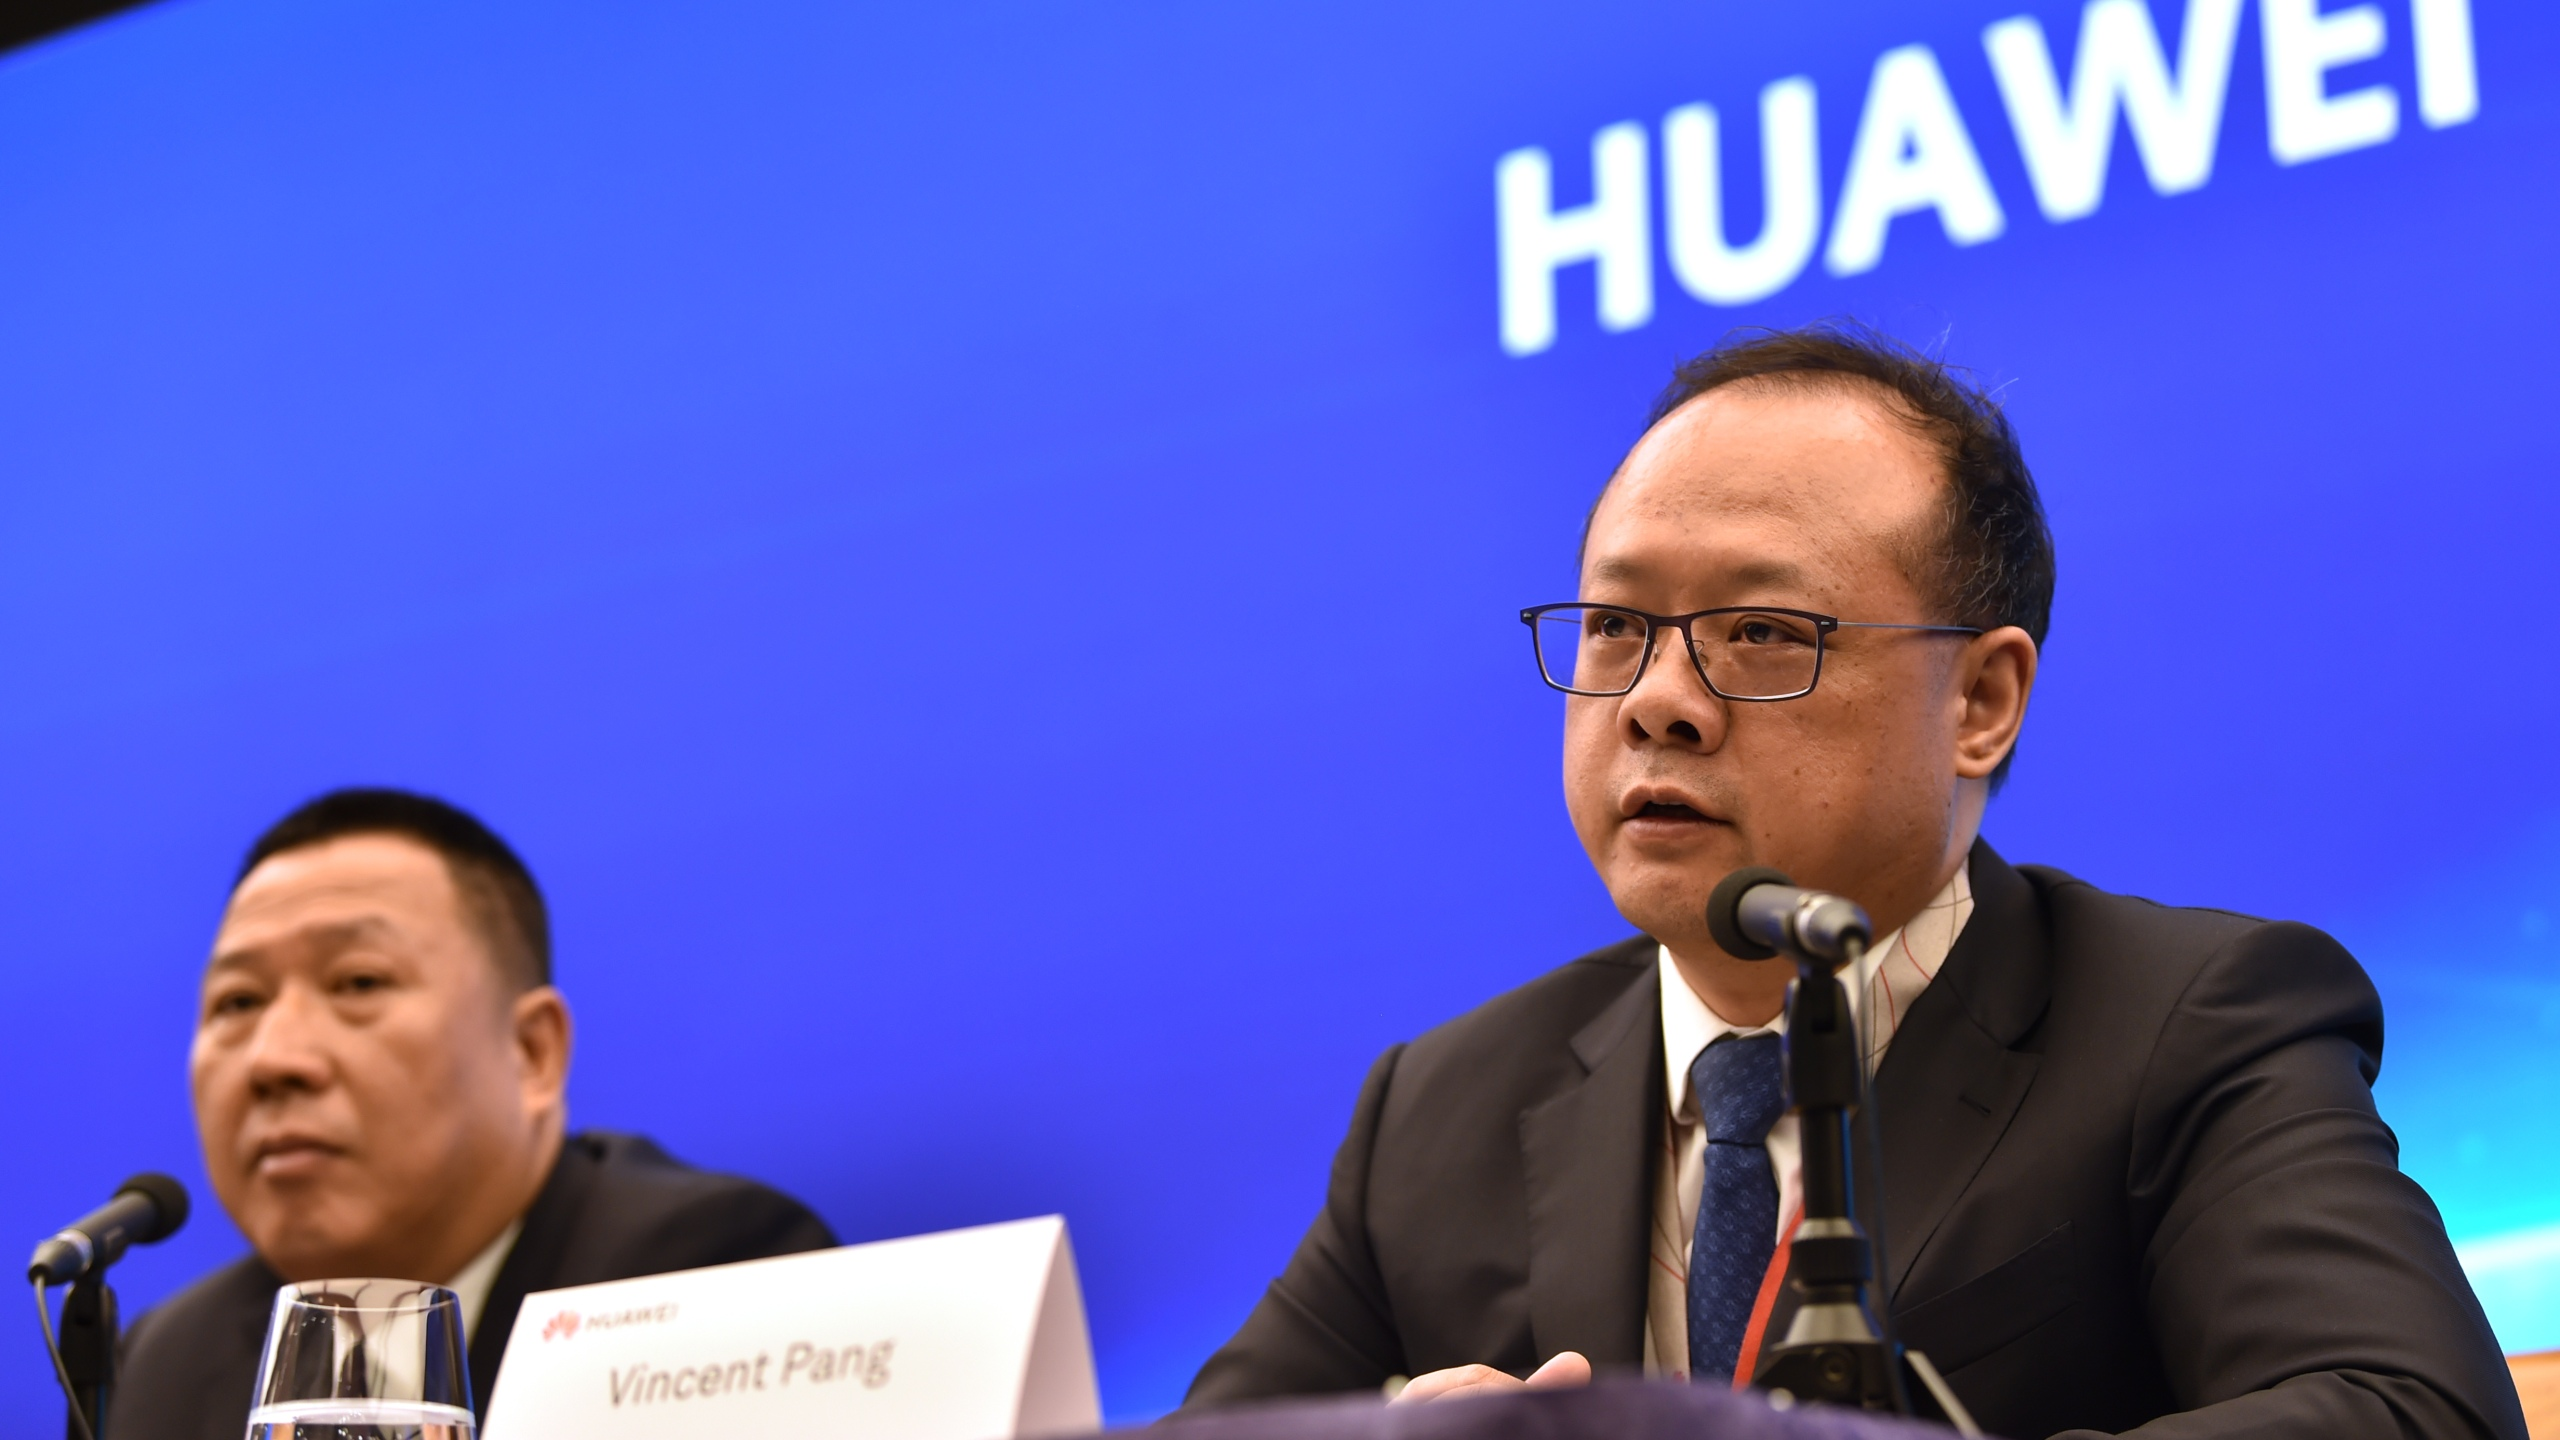 Song Liuping (L), chief legal officer of Chinese tech giant Huawei, and Vincent Pang (R), Head of Corporate Communications of Chinese tech giant Huawei, attend a press conference at the Huawei facilities in Shenzhen, Guangdong province on May 29, 2019. (Credit: HECTOR RETAMAL/AFP/Getty Images)